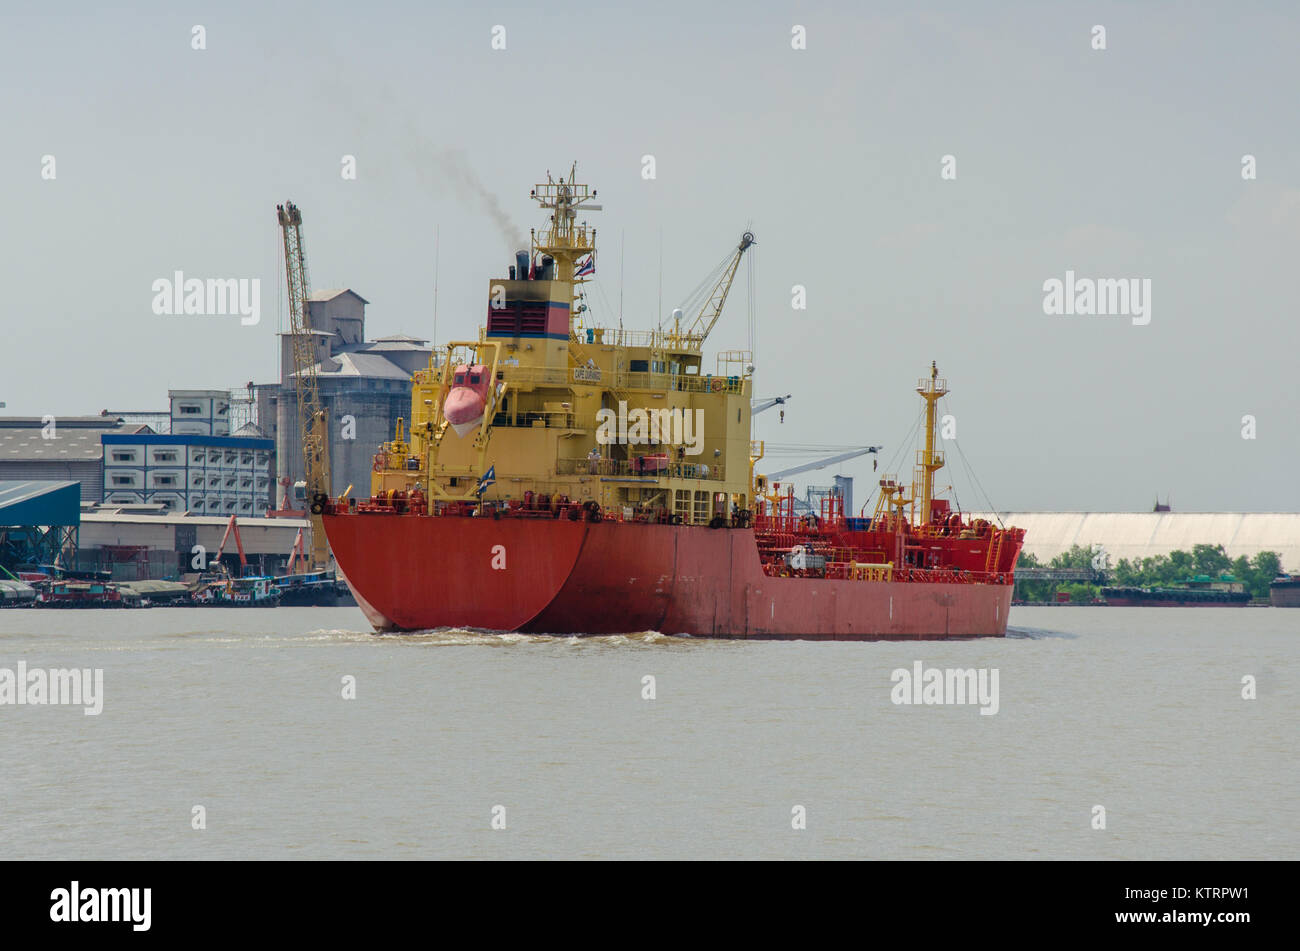 big red boat stock photos big red boat stock images alamy